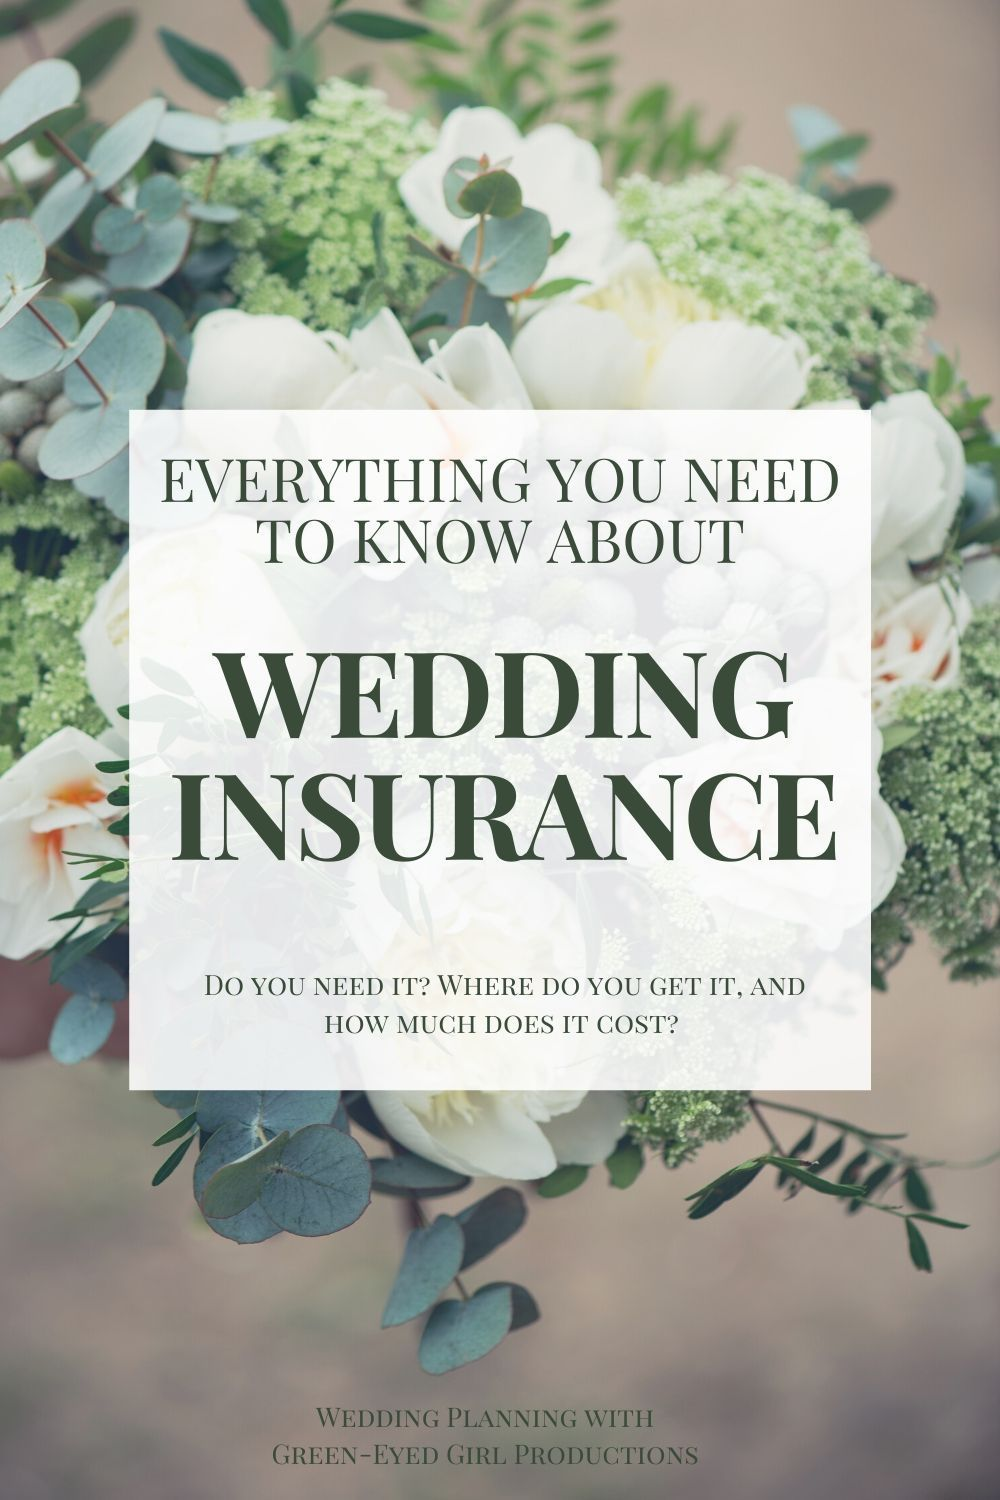 Wedding Insurance Do You Really Need It Green Eyed Girl Productions In 2020 Wedding Ceremony Outline Wedding Planner Binder Morning Wedding